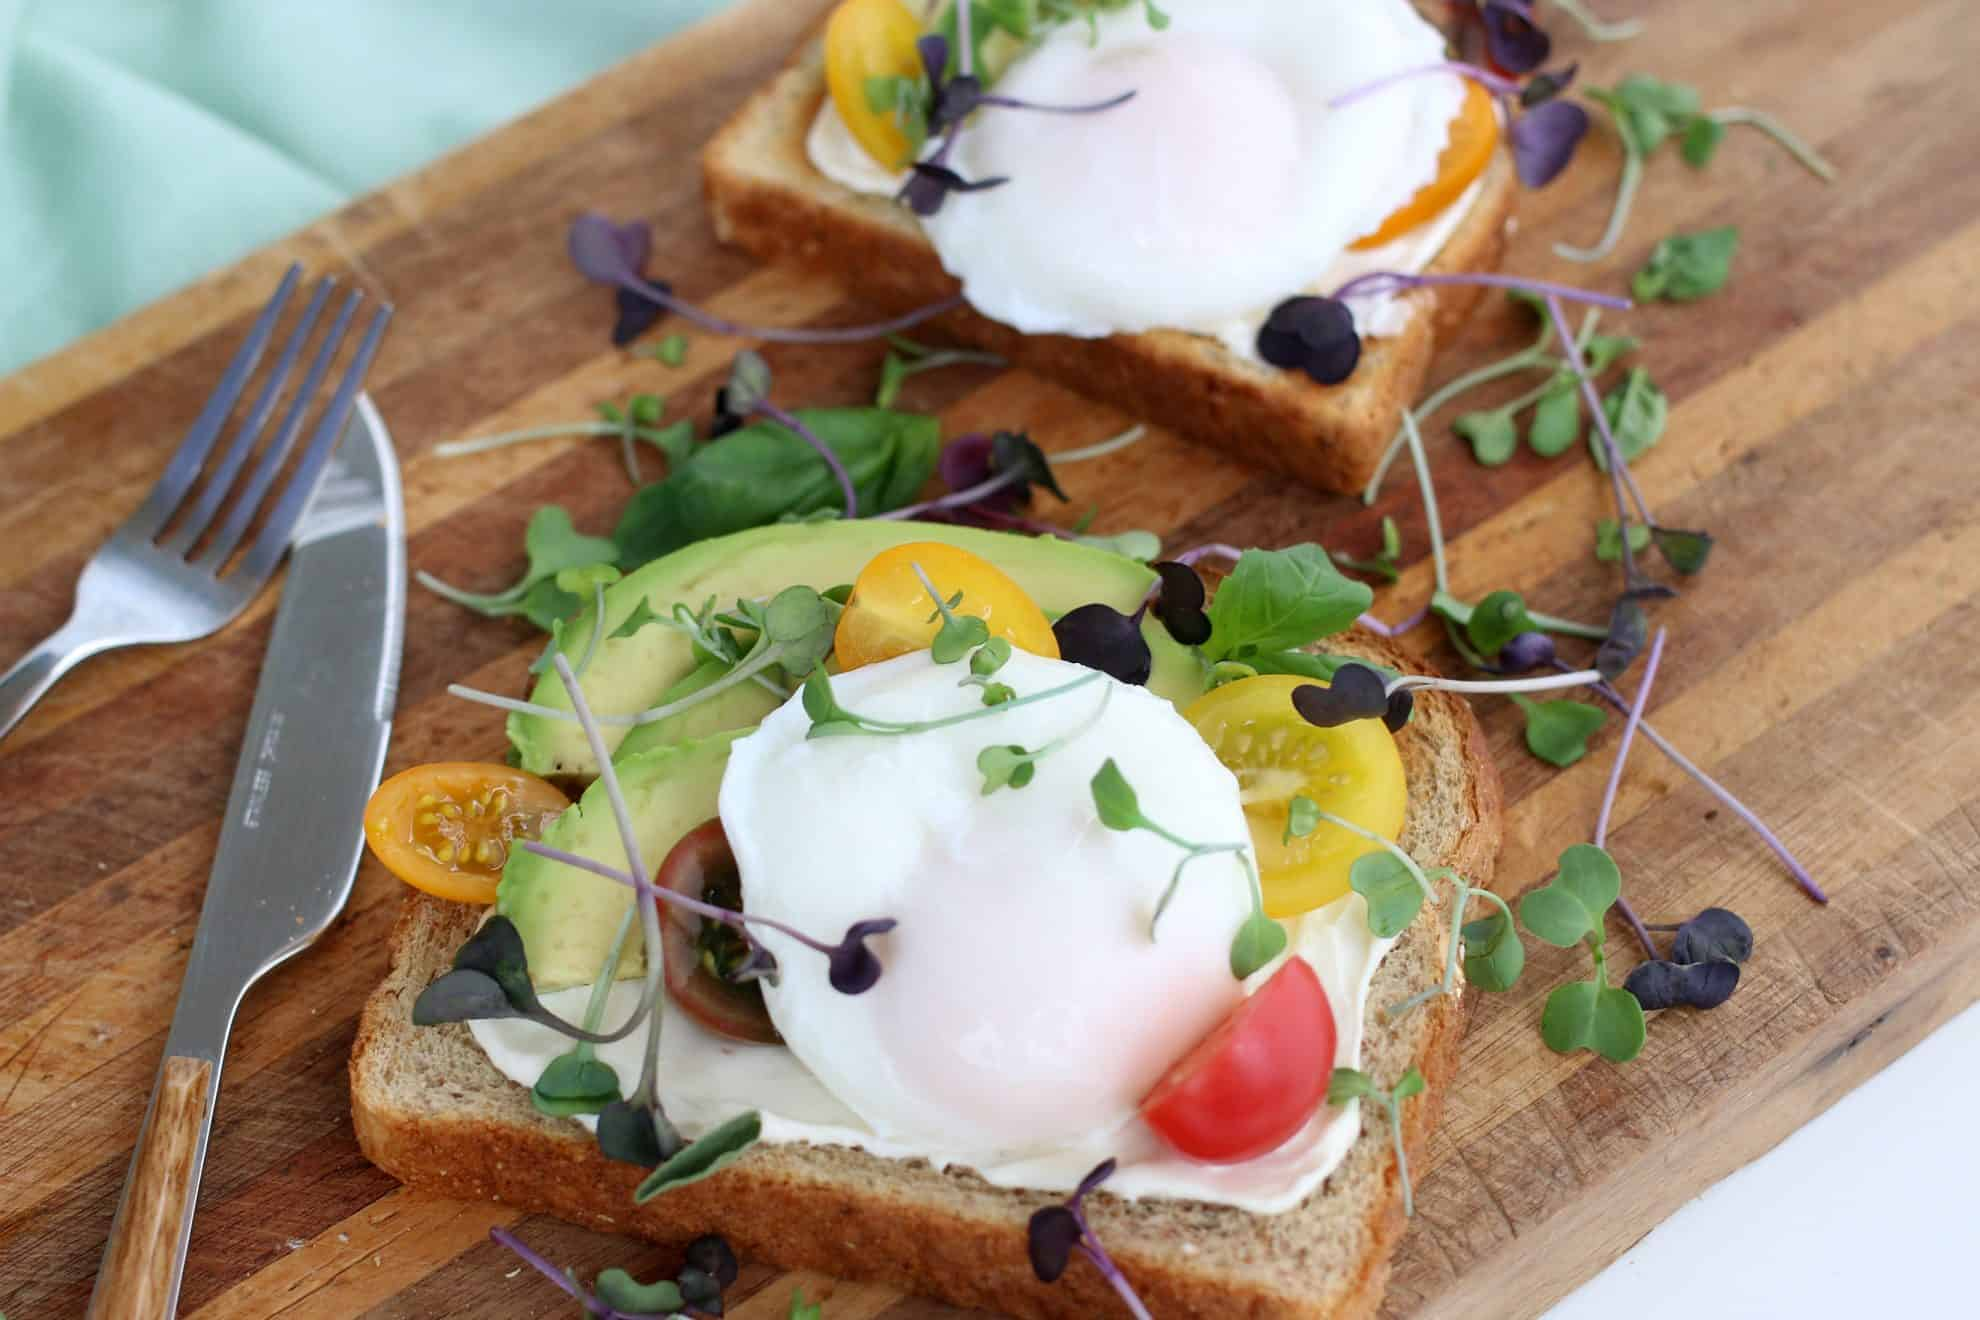 A plate of food with a knife, with Poached egg